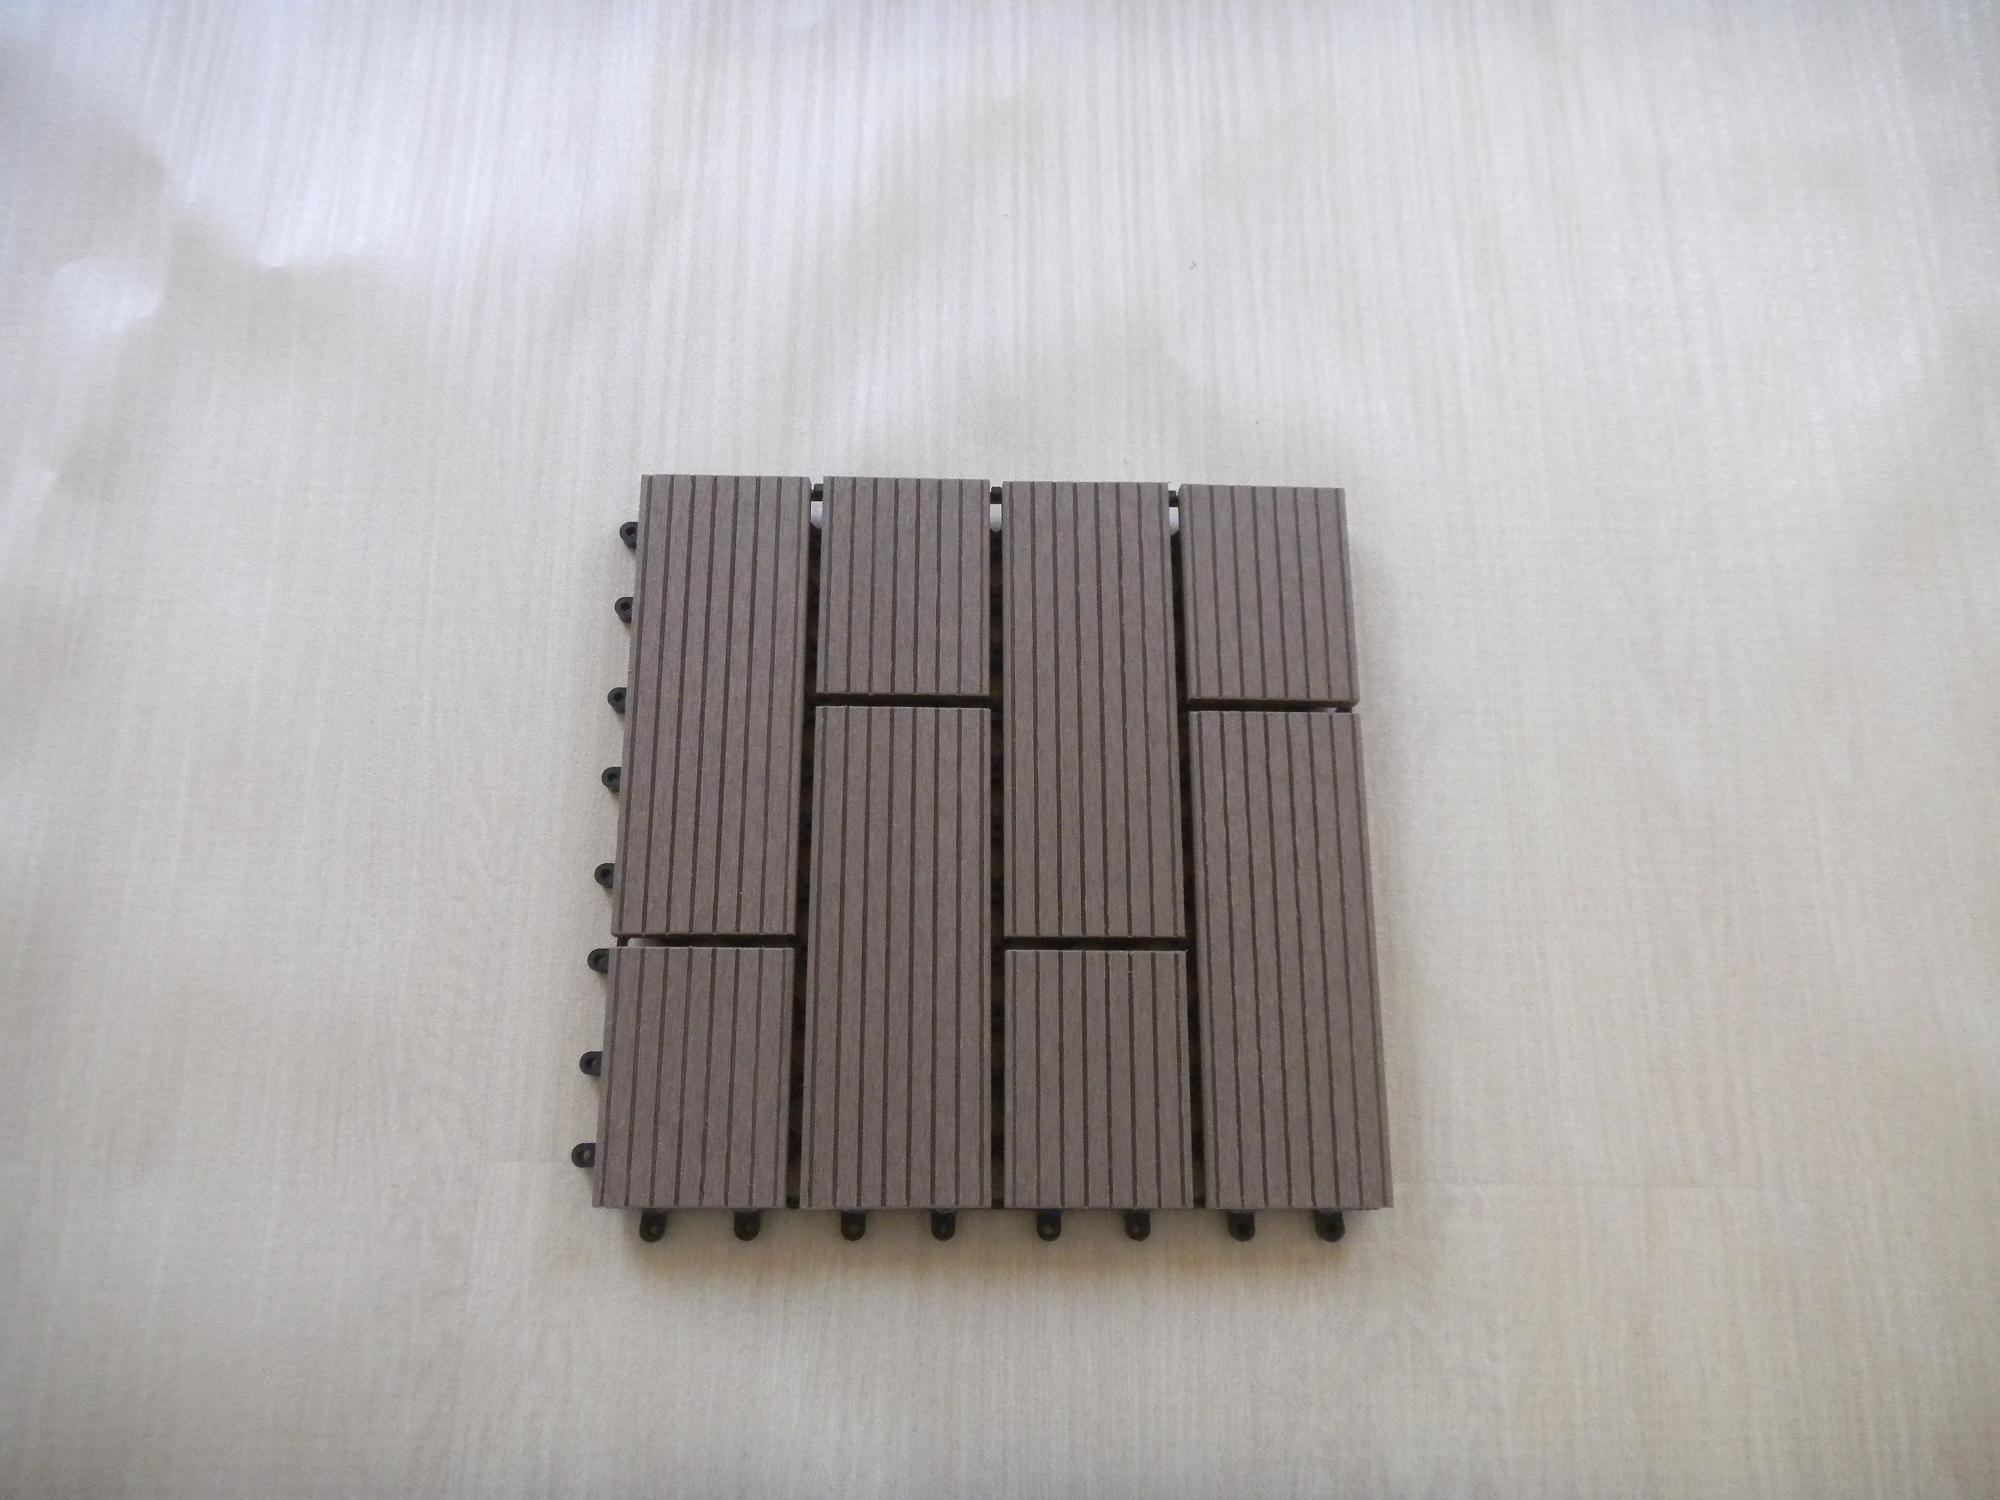 Home Depot Metal Decking : Wood decking home depot tiles